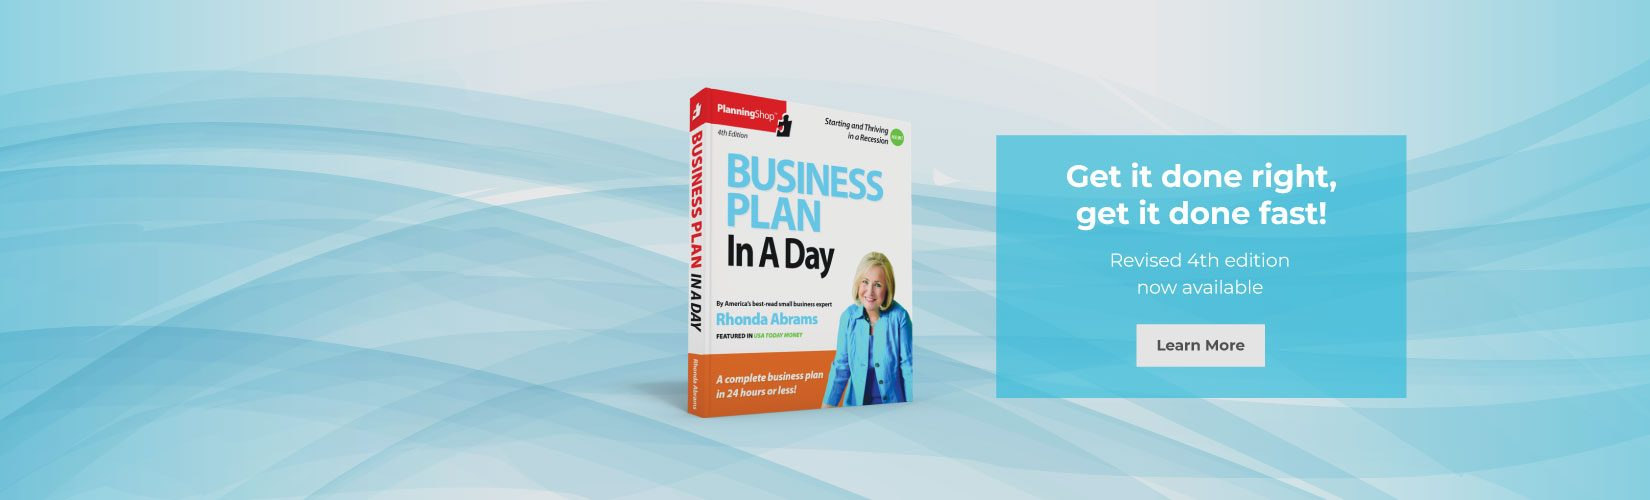 Image banner. Business Plan In A Day: Revised 4th edition now available! Click to learn more.